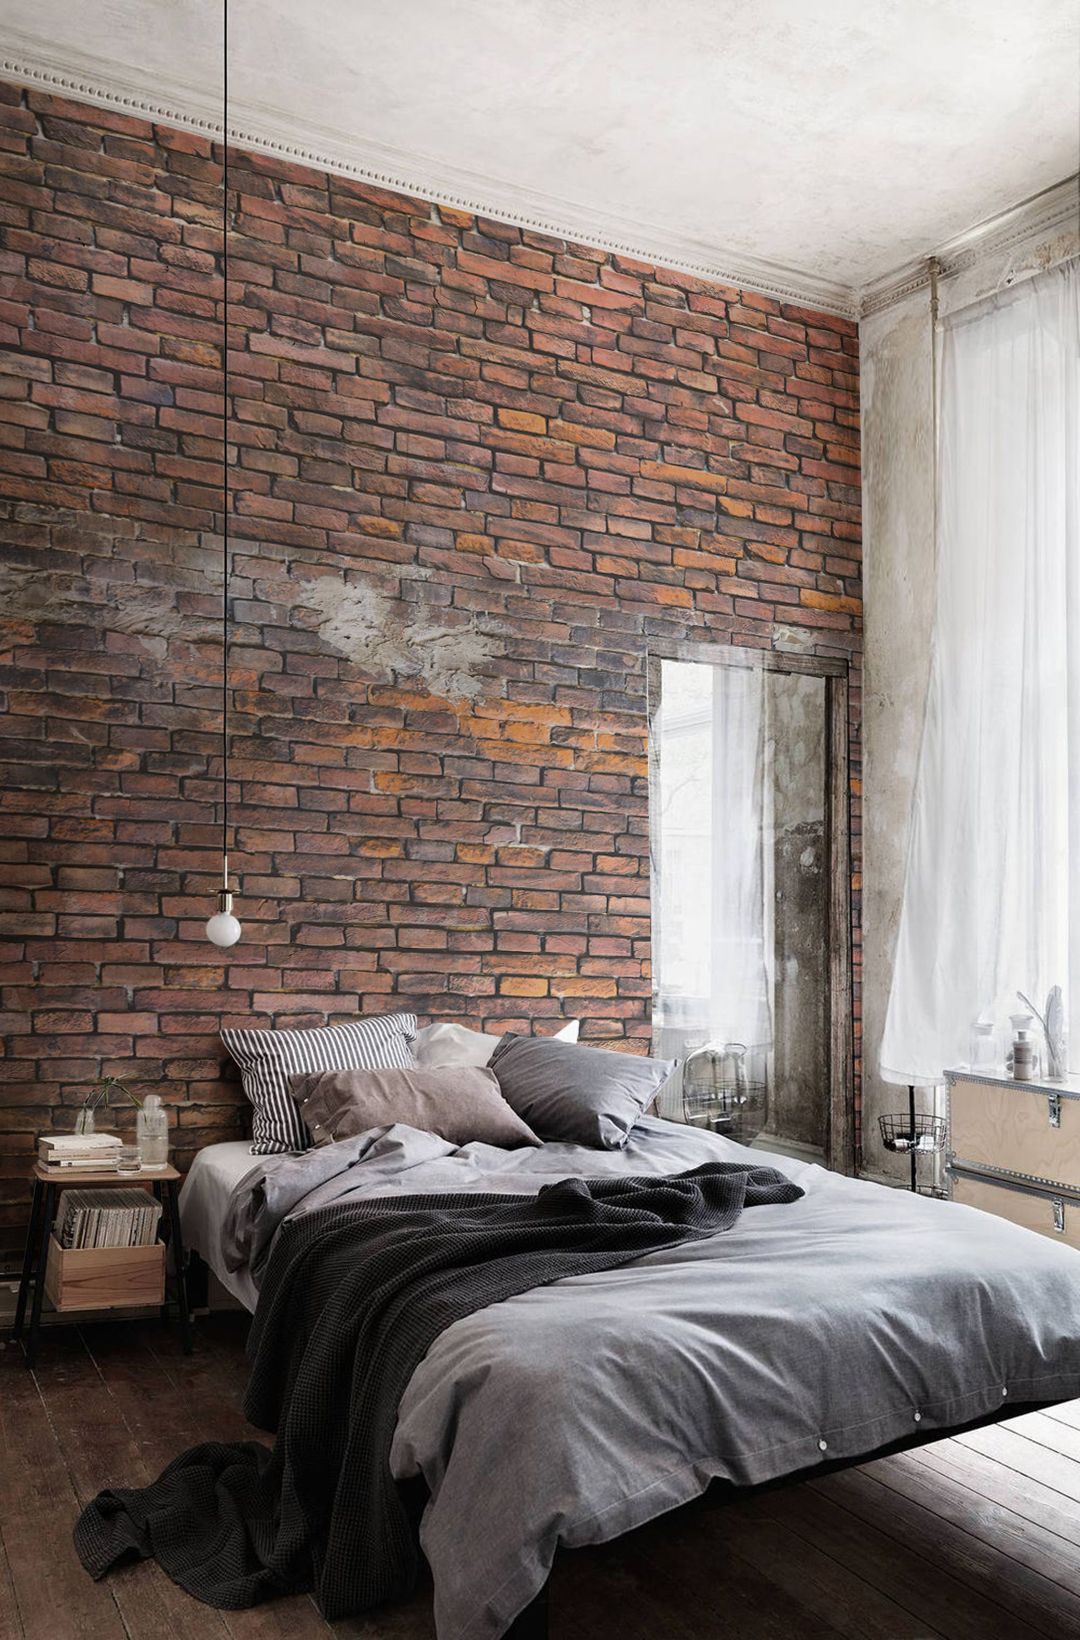 You donut need a brick wall to achieve your dream lofty interior